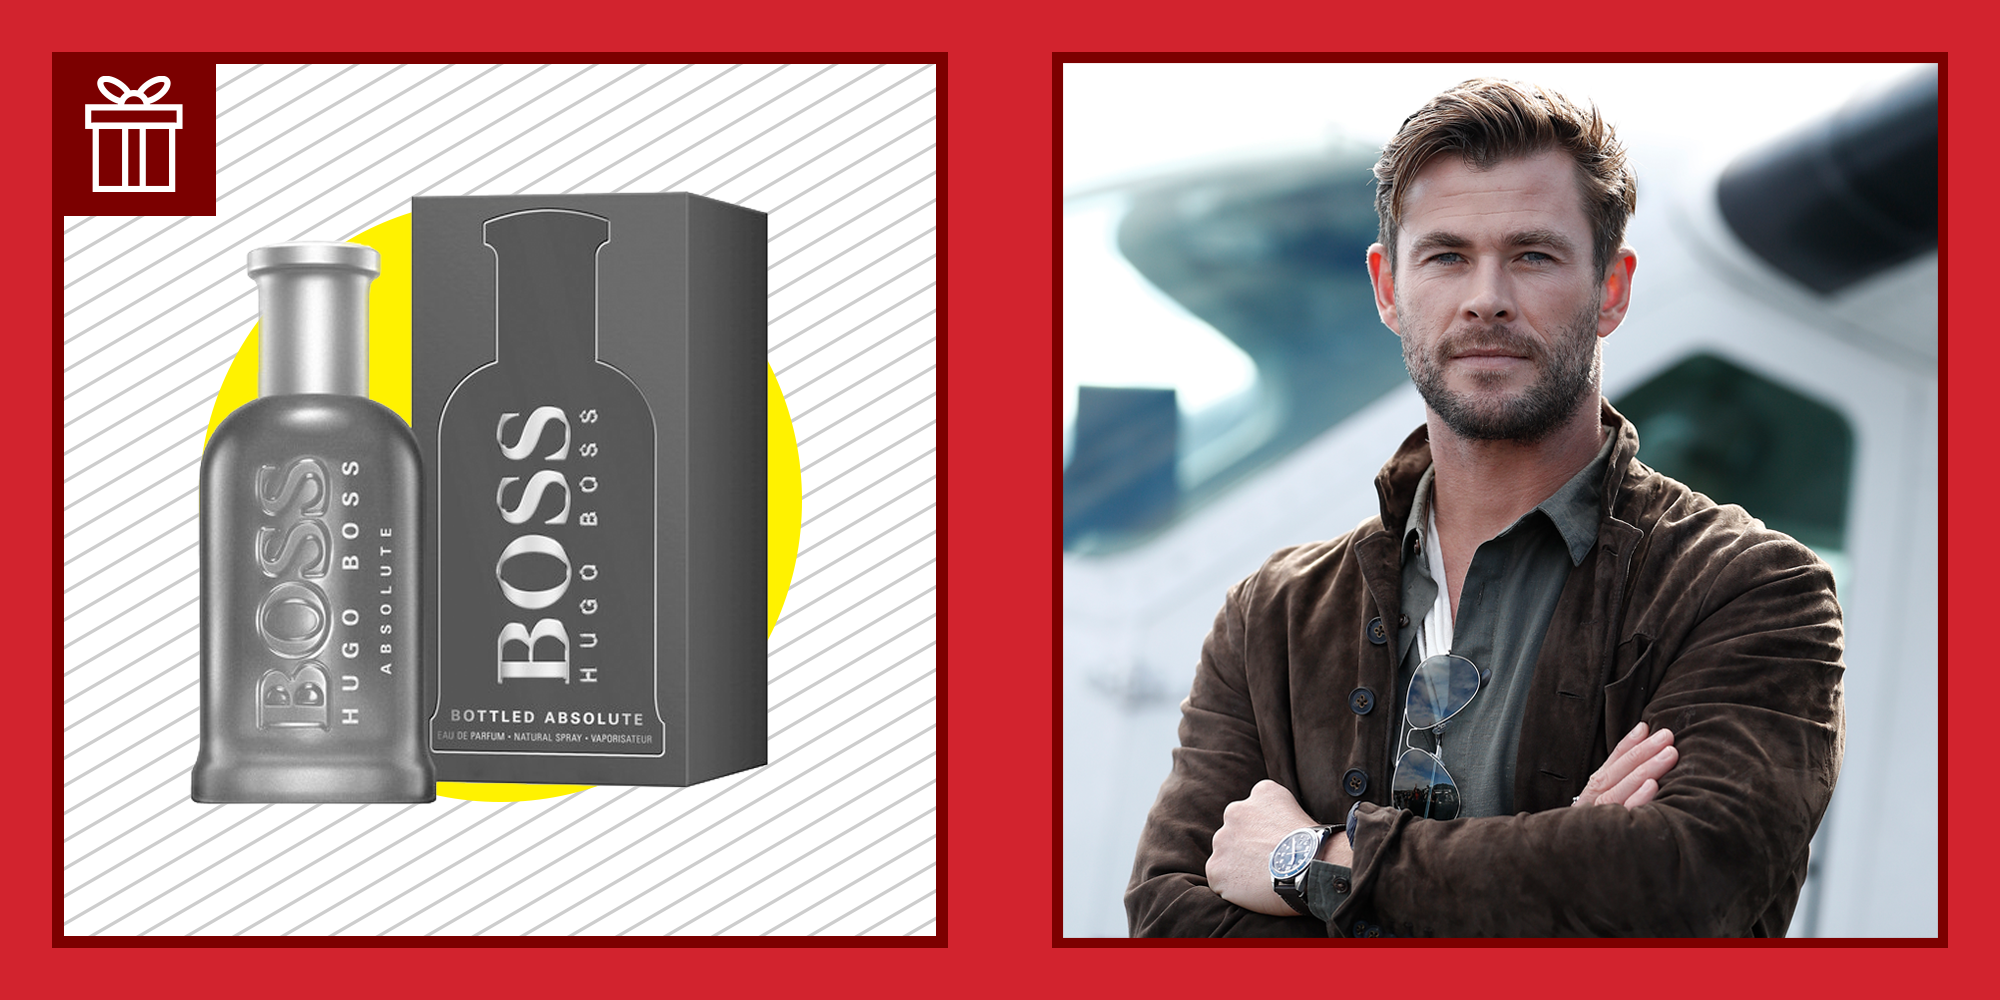 Chris Hemsworth Shares His Top Holiday Gift Ideas